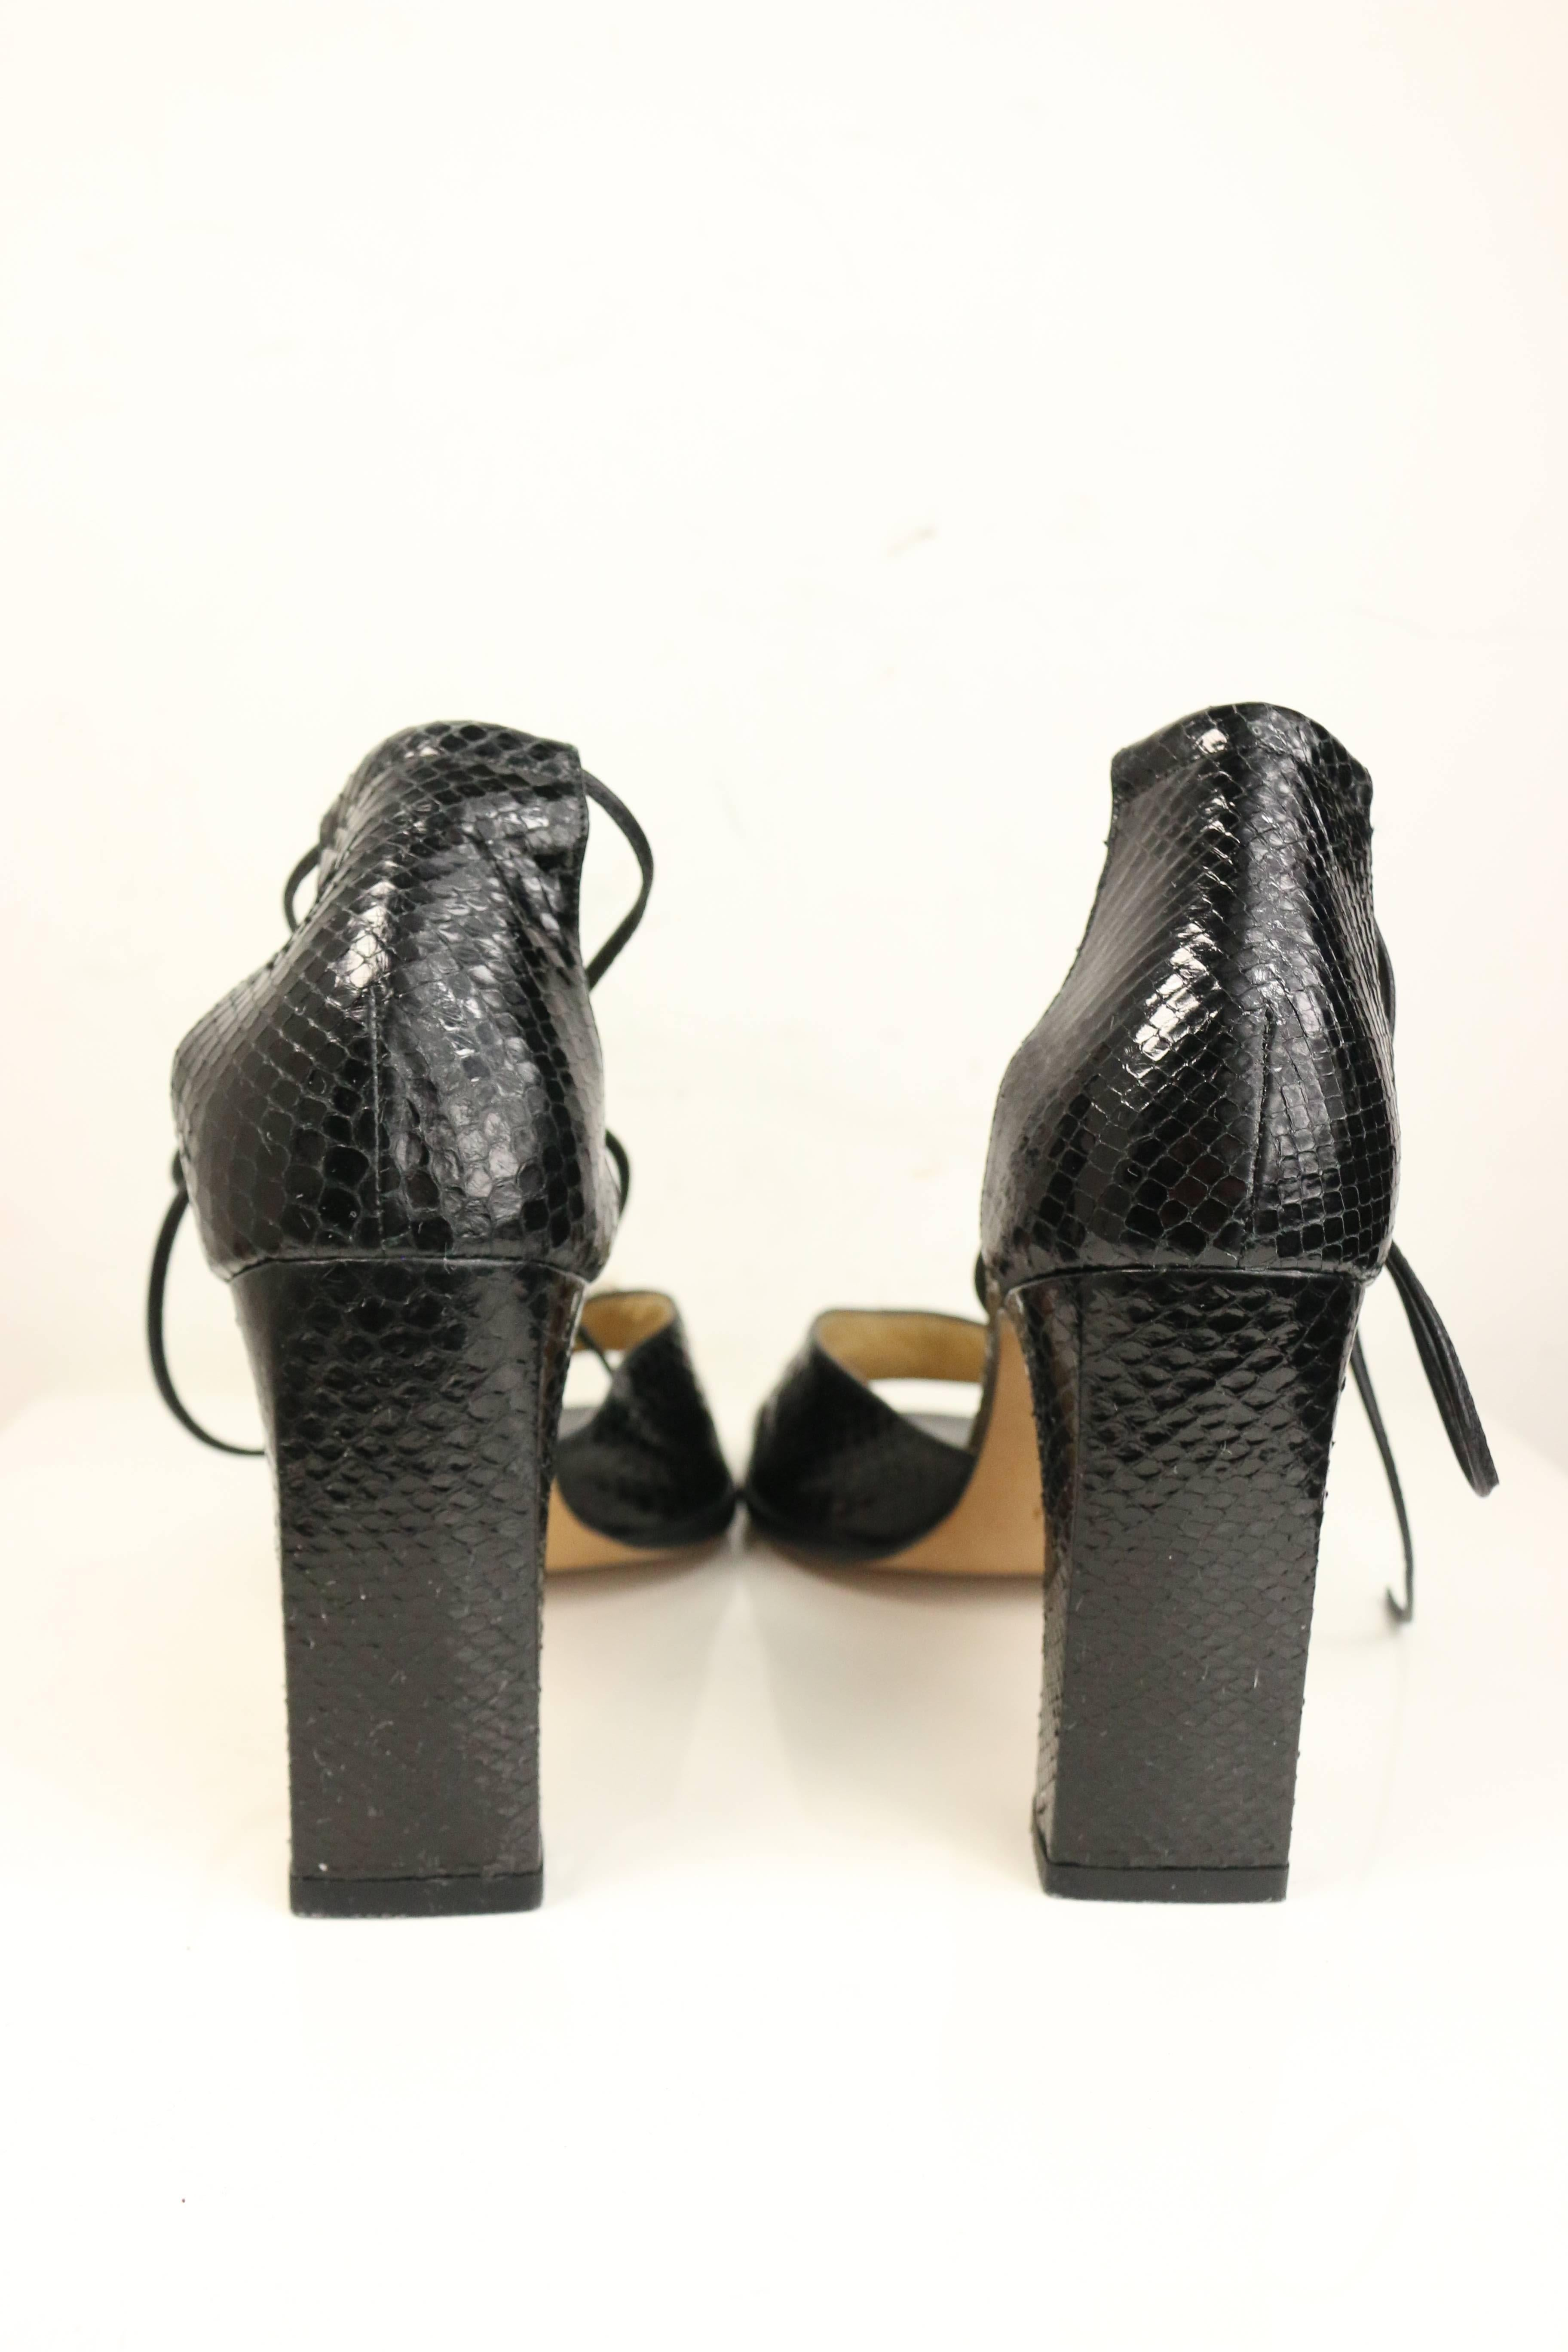 s category sca heels blk toe bootie markets zip cairo tom ford open womens os b product archives shoes out cut women